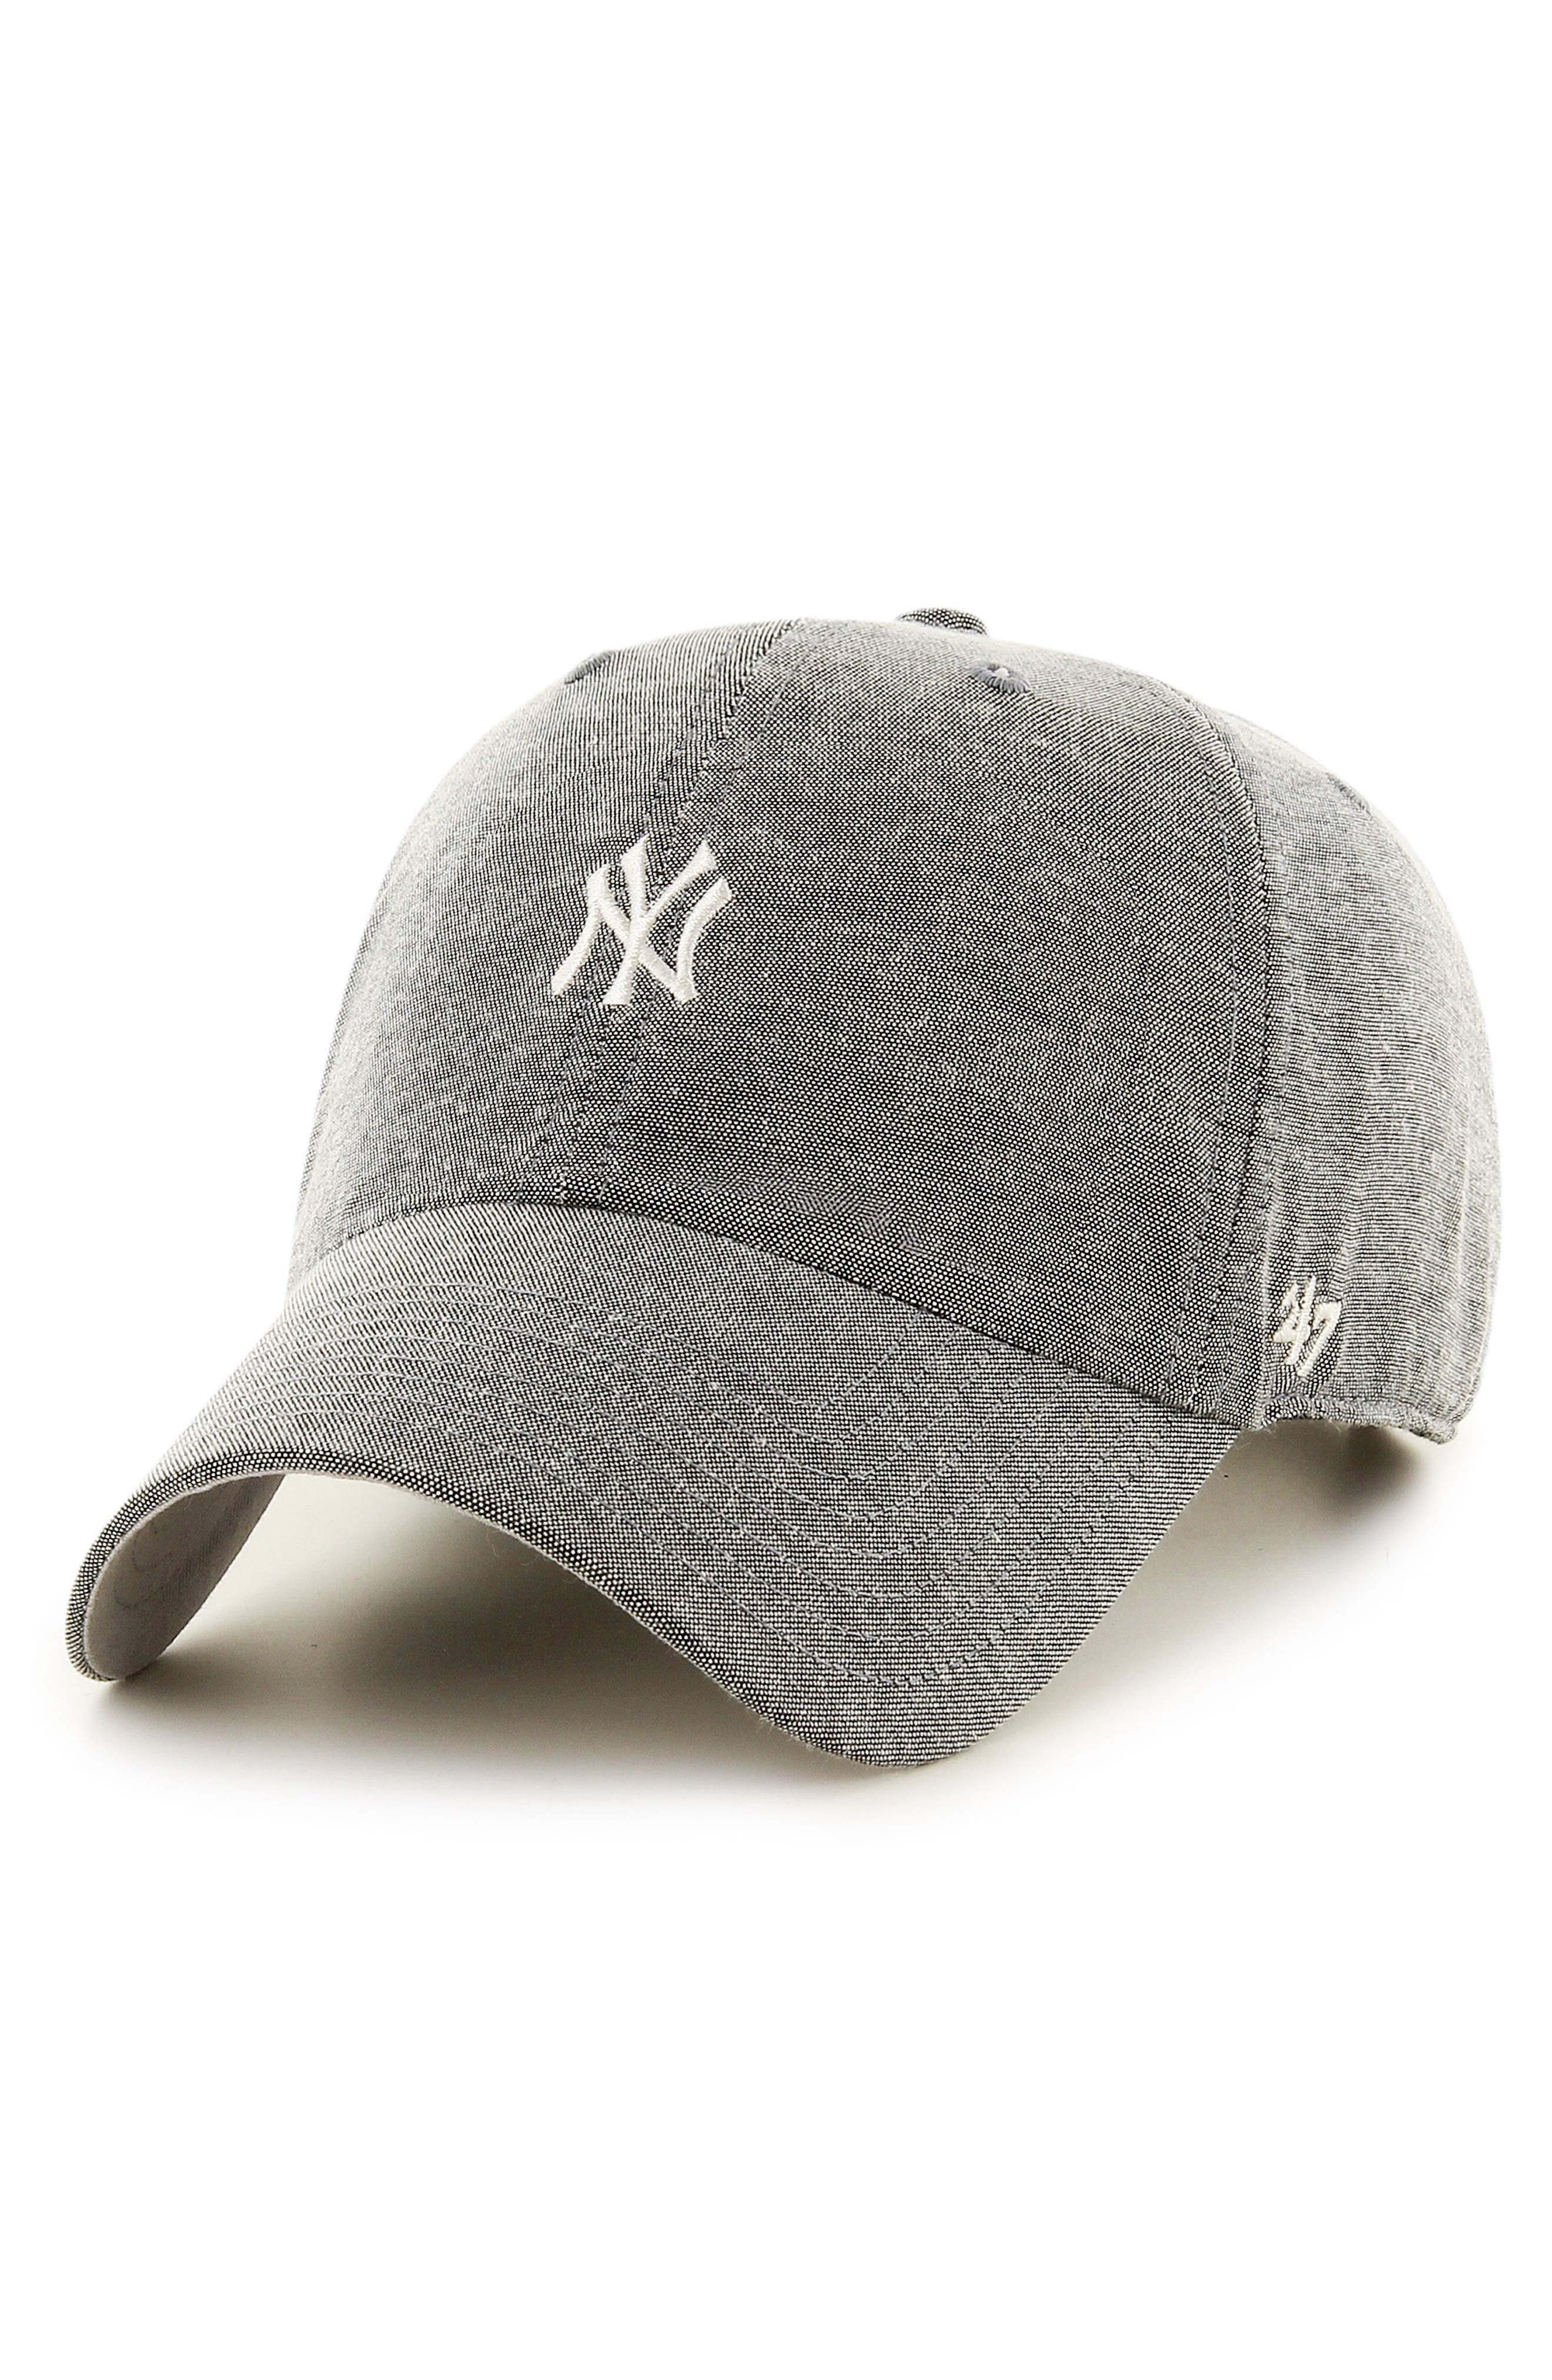 Monument Salute Clean Up NY Yankees Baseball Cap,                             Main thumbnail 1, color,